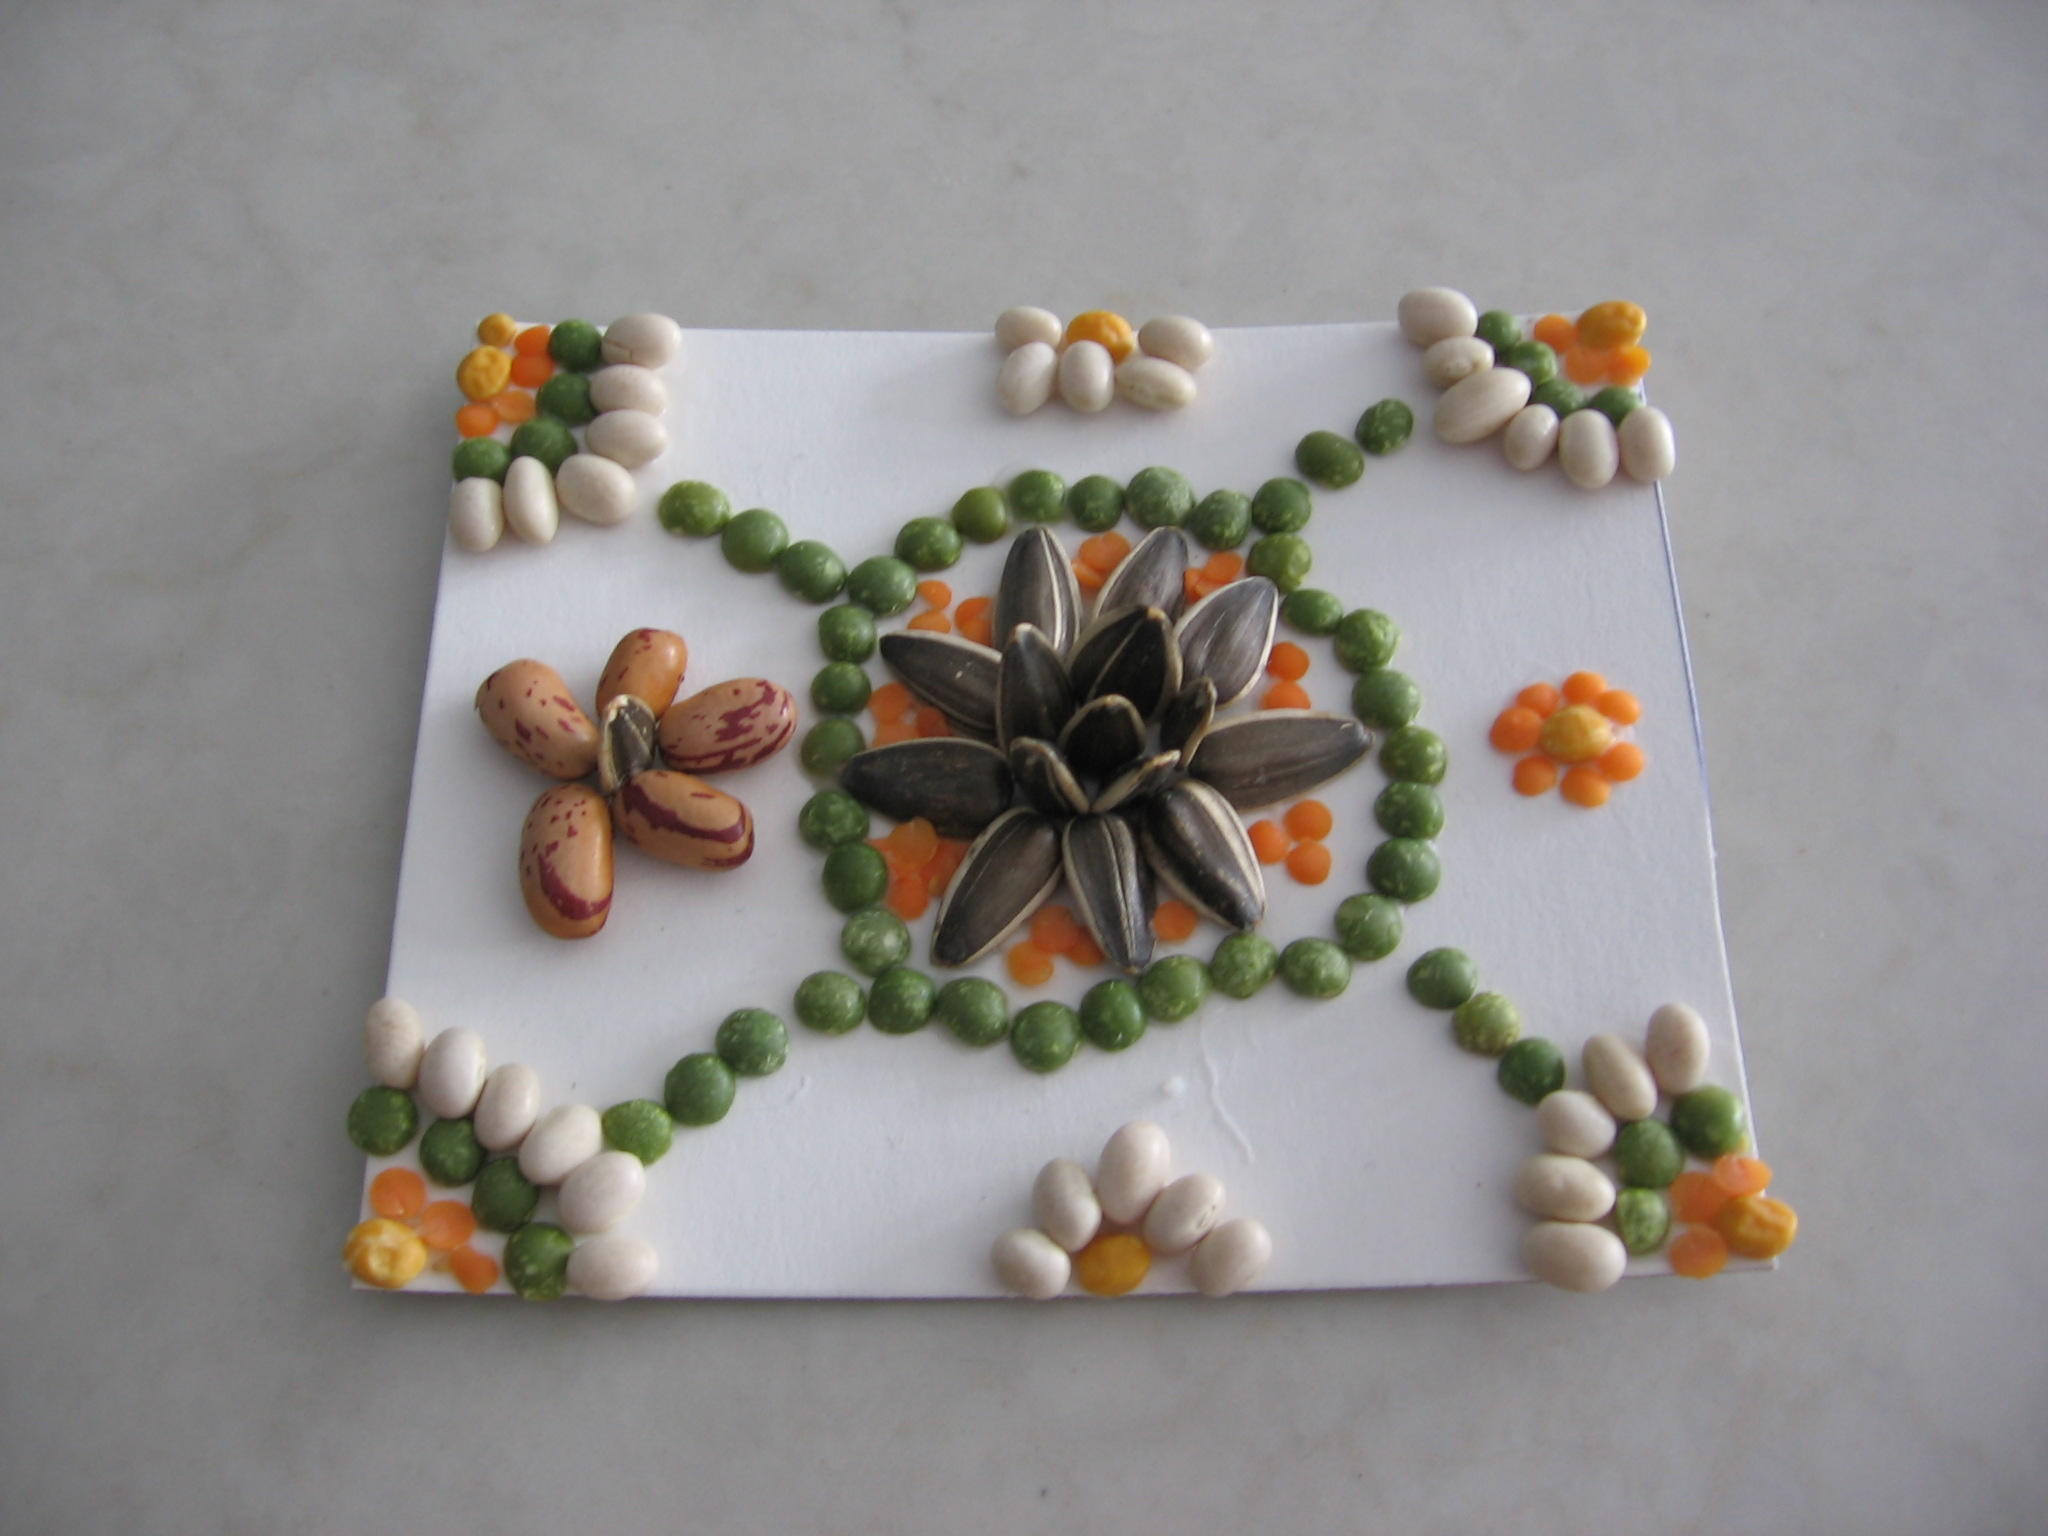 Seed art is a great way to combine art and gardening